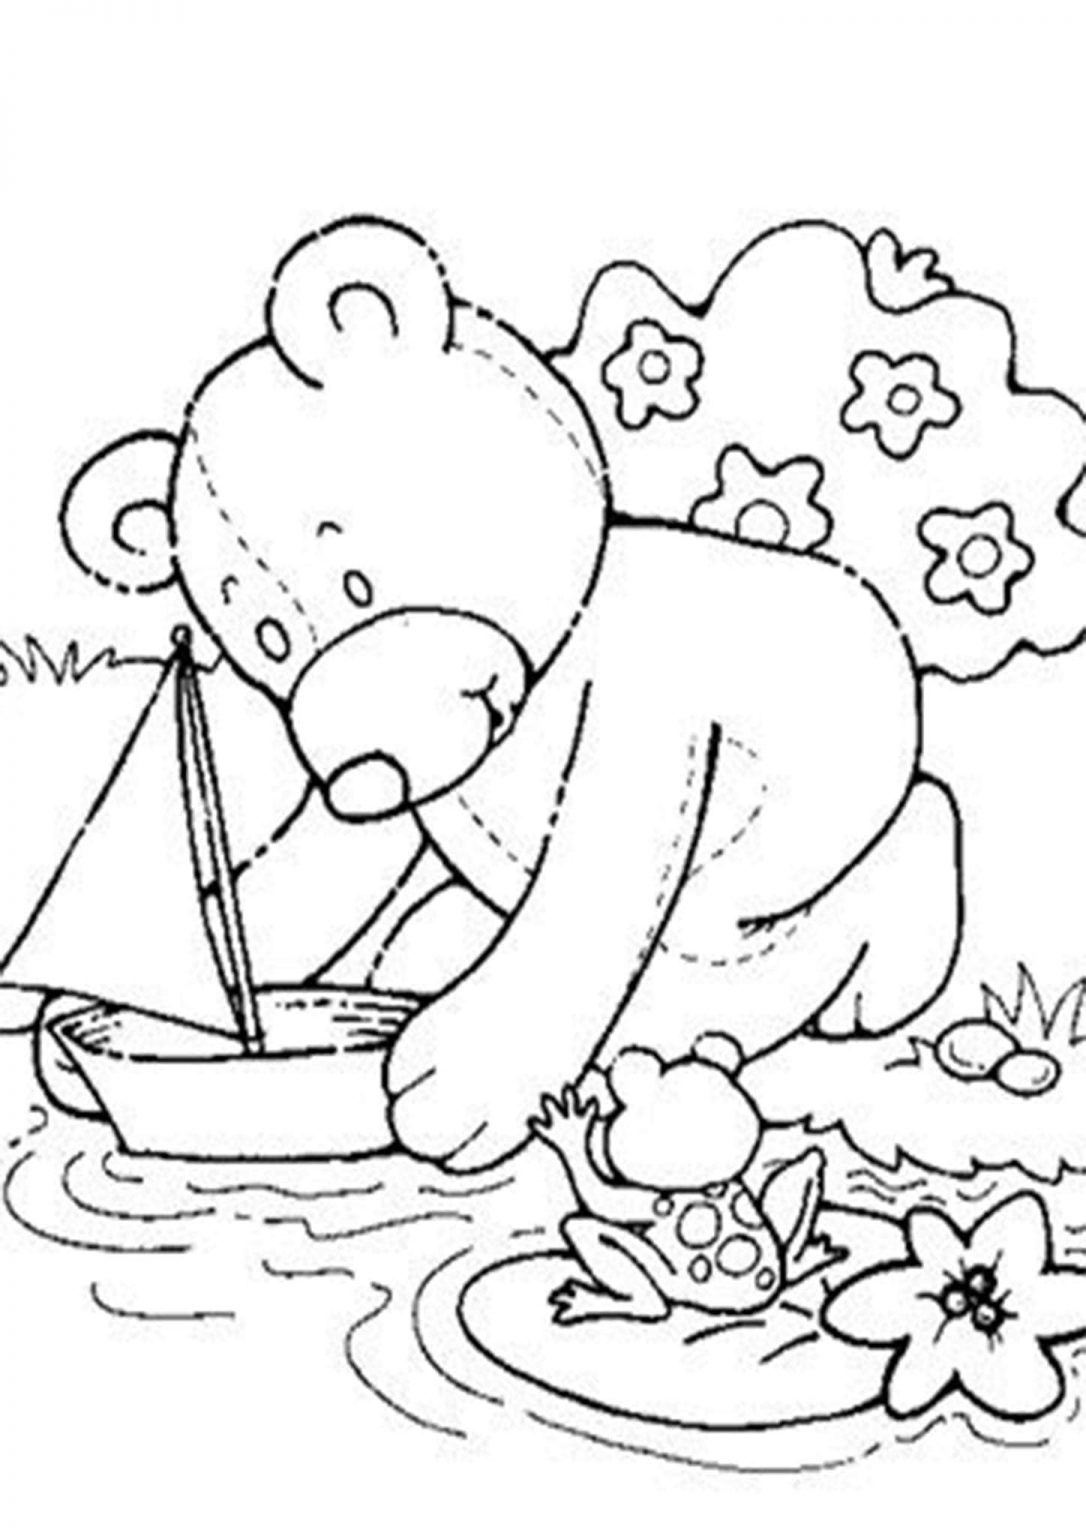 Free Easy To Print Bear Coloring Pages Tulamama Teddy Bear Coloring Pages Bear Coloring Pages Dinosaur Coloring Pages